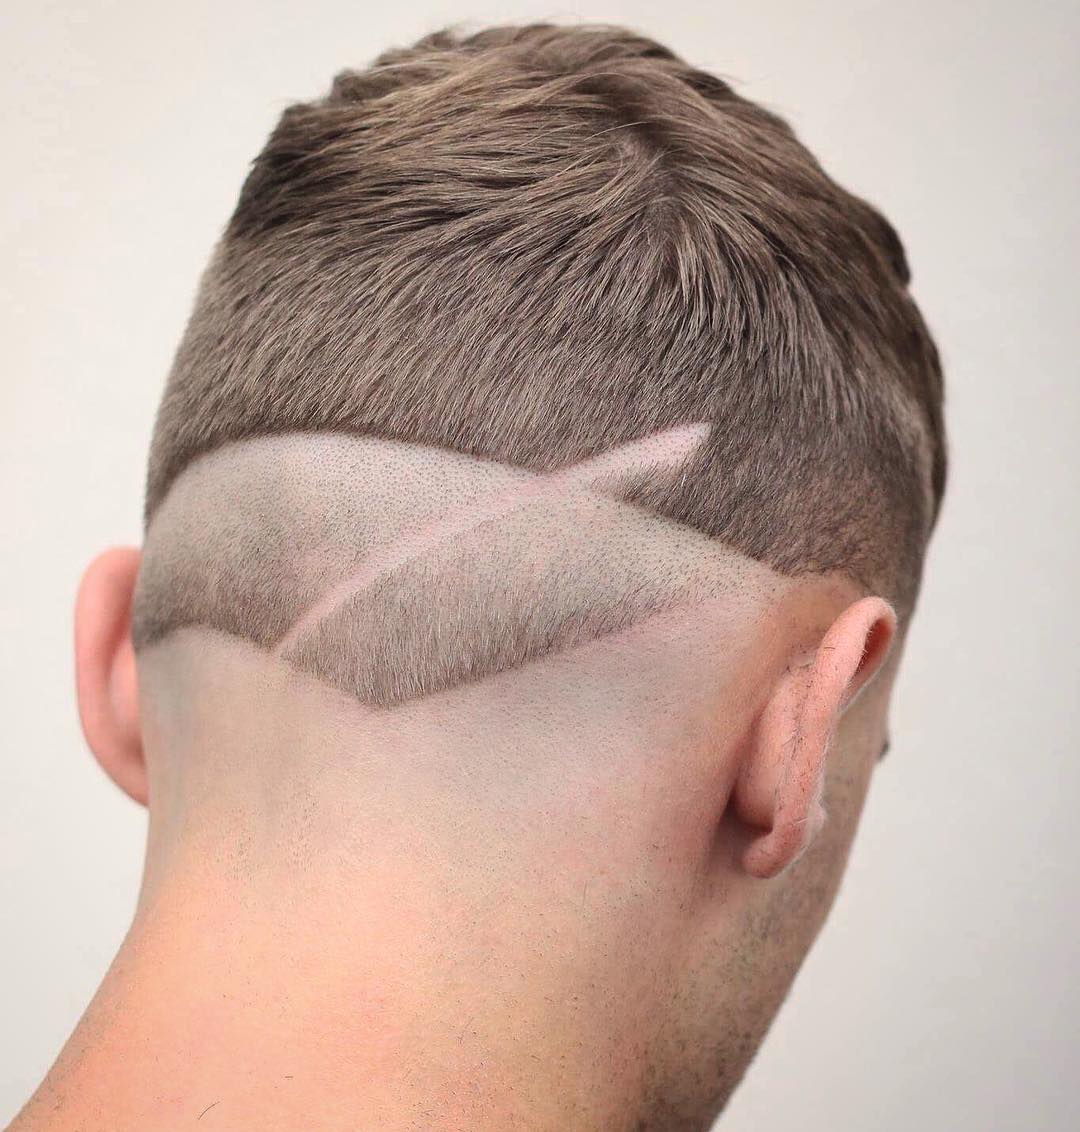 Reverse Fade Haircut + Surgical Line